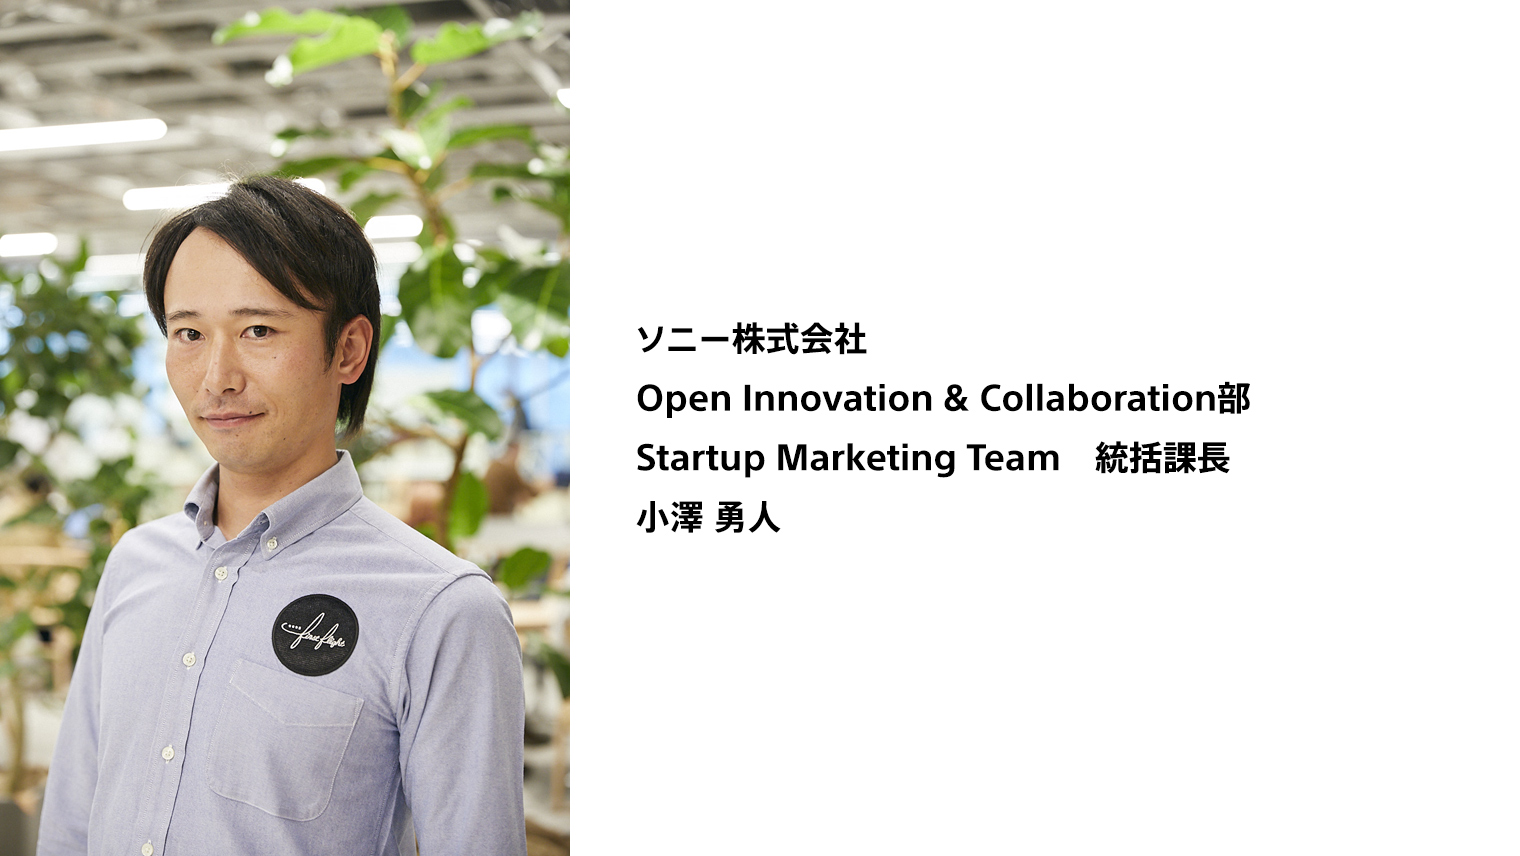 ソニー株式会社 Open Innovation & Collaboration部 Startup Marketing Team 統括課長 小澤 勇人